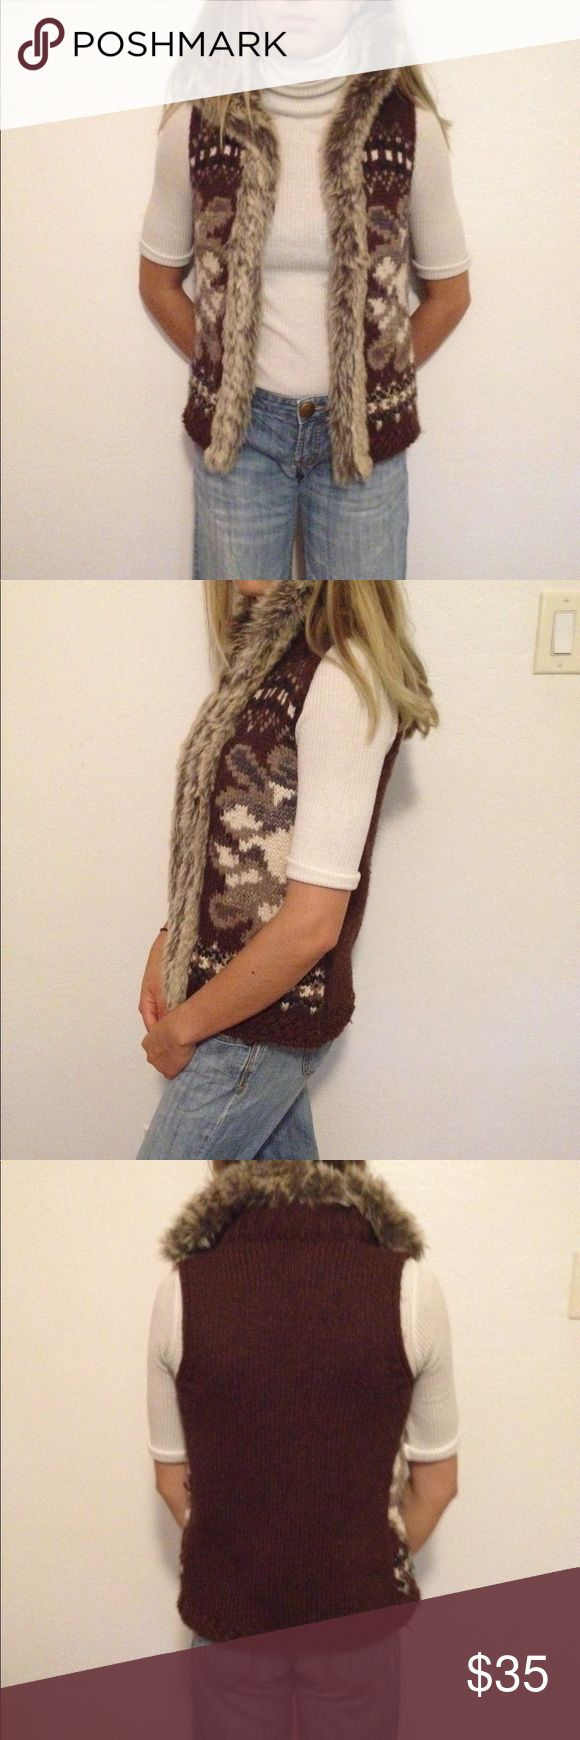 Authentic Austrian Knit Vest This is an Austrian brand fall/winter vest. It has a faux-fur lined color and is made out of a warm wool-blend. Modal wears a size 2. Open to offers. Benetton Tween Jackets & Coats Vests